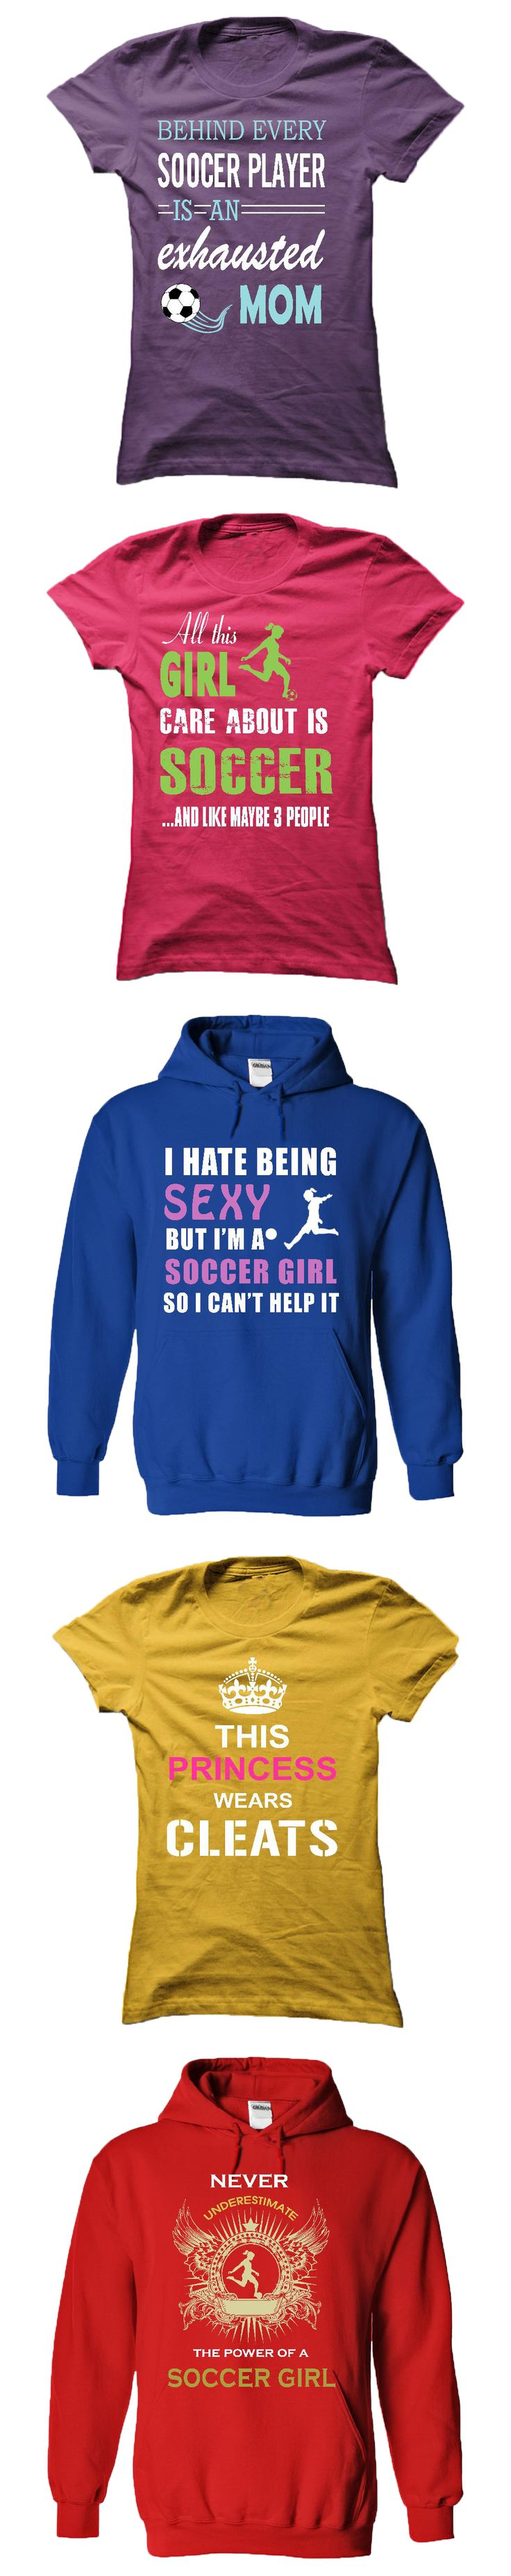 You can go here to see more soccer t-shirts & hoodies: http://www.sunfrogshirts.com/HQTeeHoodie/Custom-Soccer-Tshirts-and-Hoodies